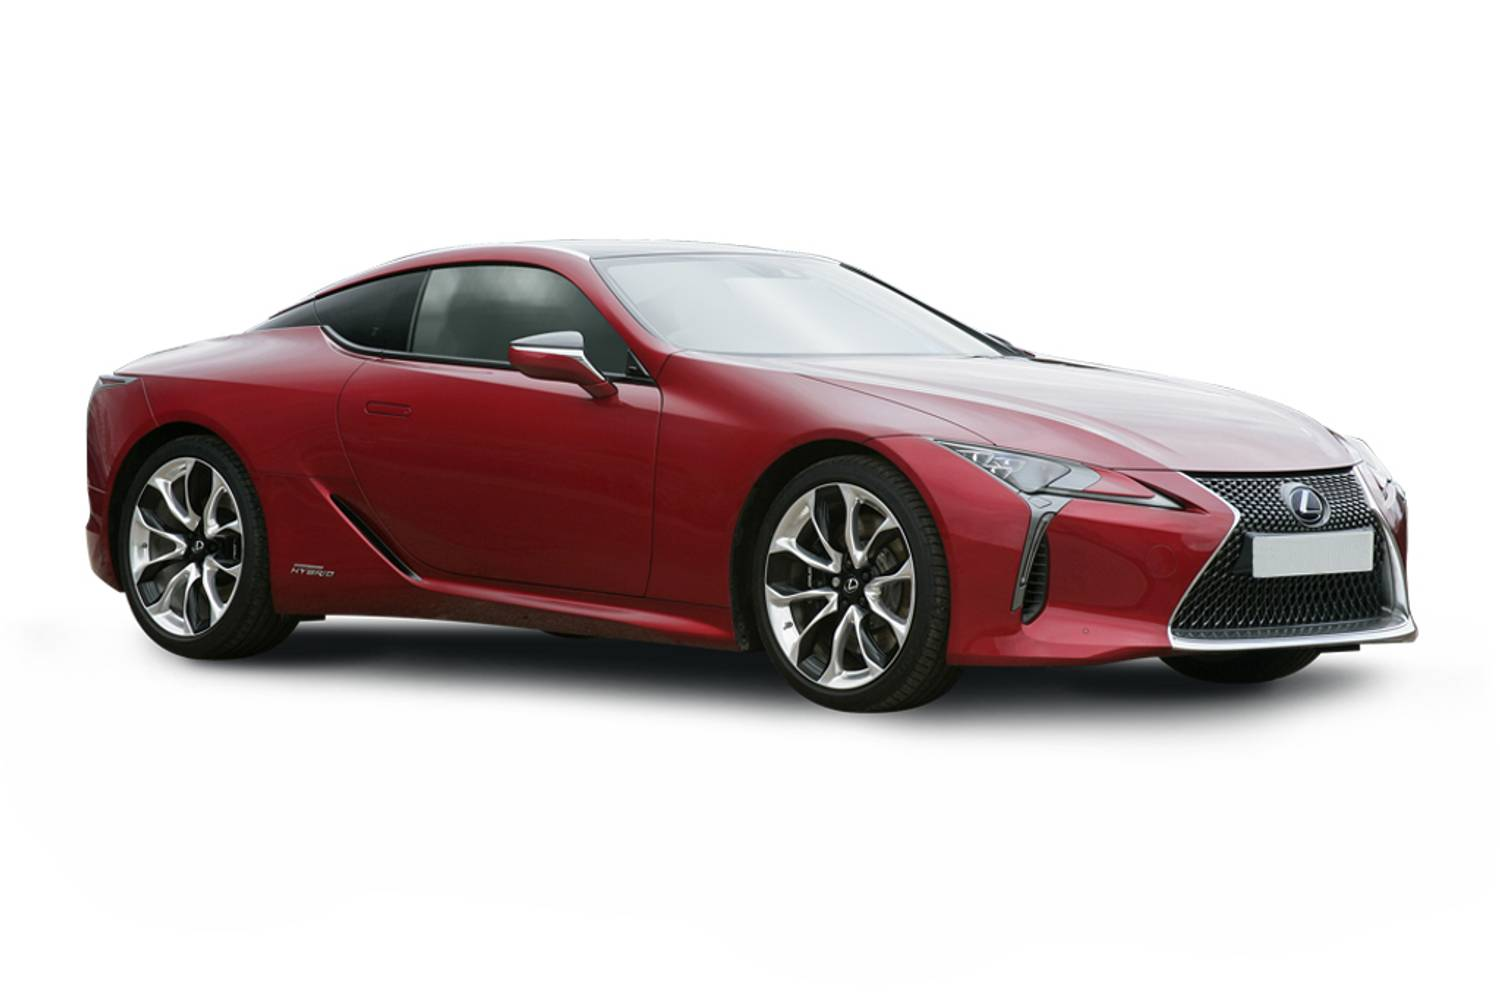 new lexus lc coupe 500h 3 5 sport 2 door auto 2017 for sale. Black Bedroom Furniture Sets. Home Design Ideas